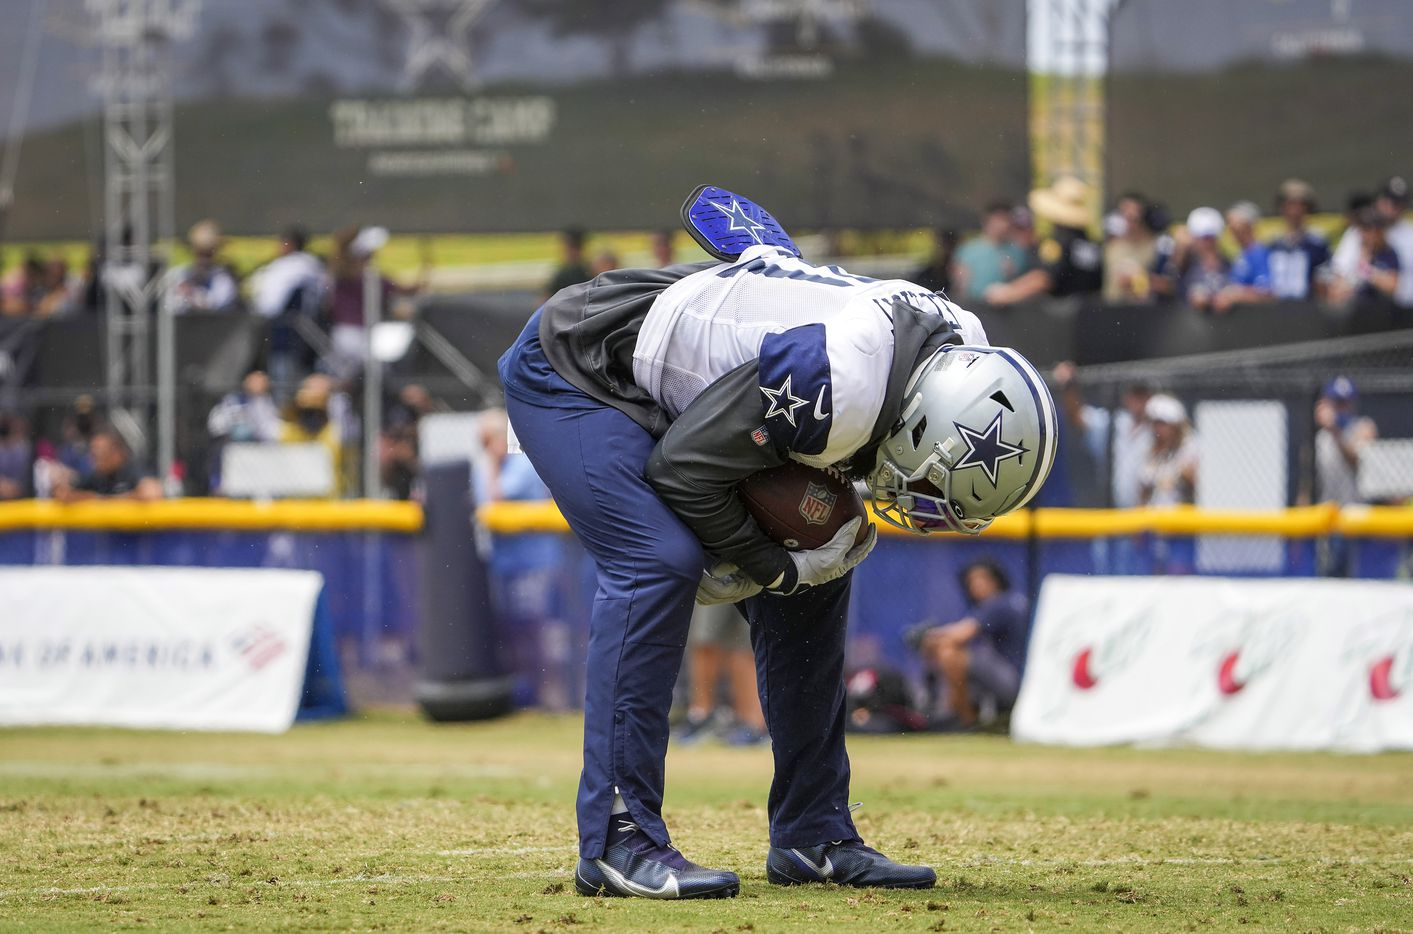 Dallas Cowboys running back Ezekiel Elliott  catches his breath after a long run during a practice at training camp on Wednesday, Aug. 11, 2021, in Oxnard, Calif.